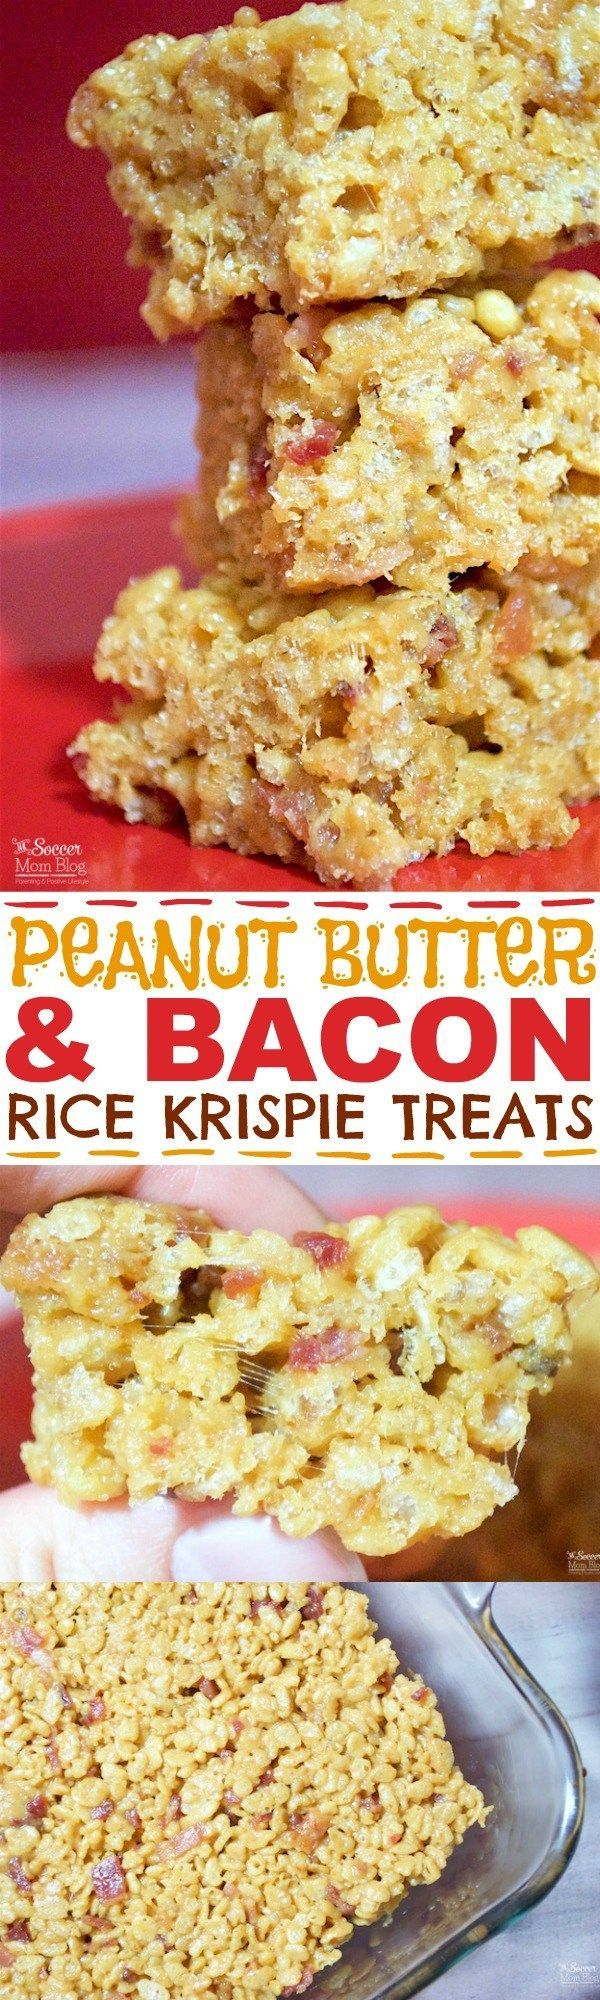 The PERFECT combination of sweet & salty -- Bacon Peanut Butter Rice Krispie Treats are an EASY crowd-pleasing NO BAKE dessert!